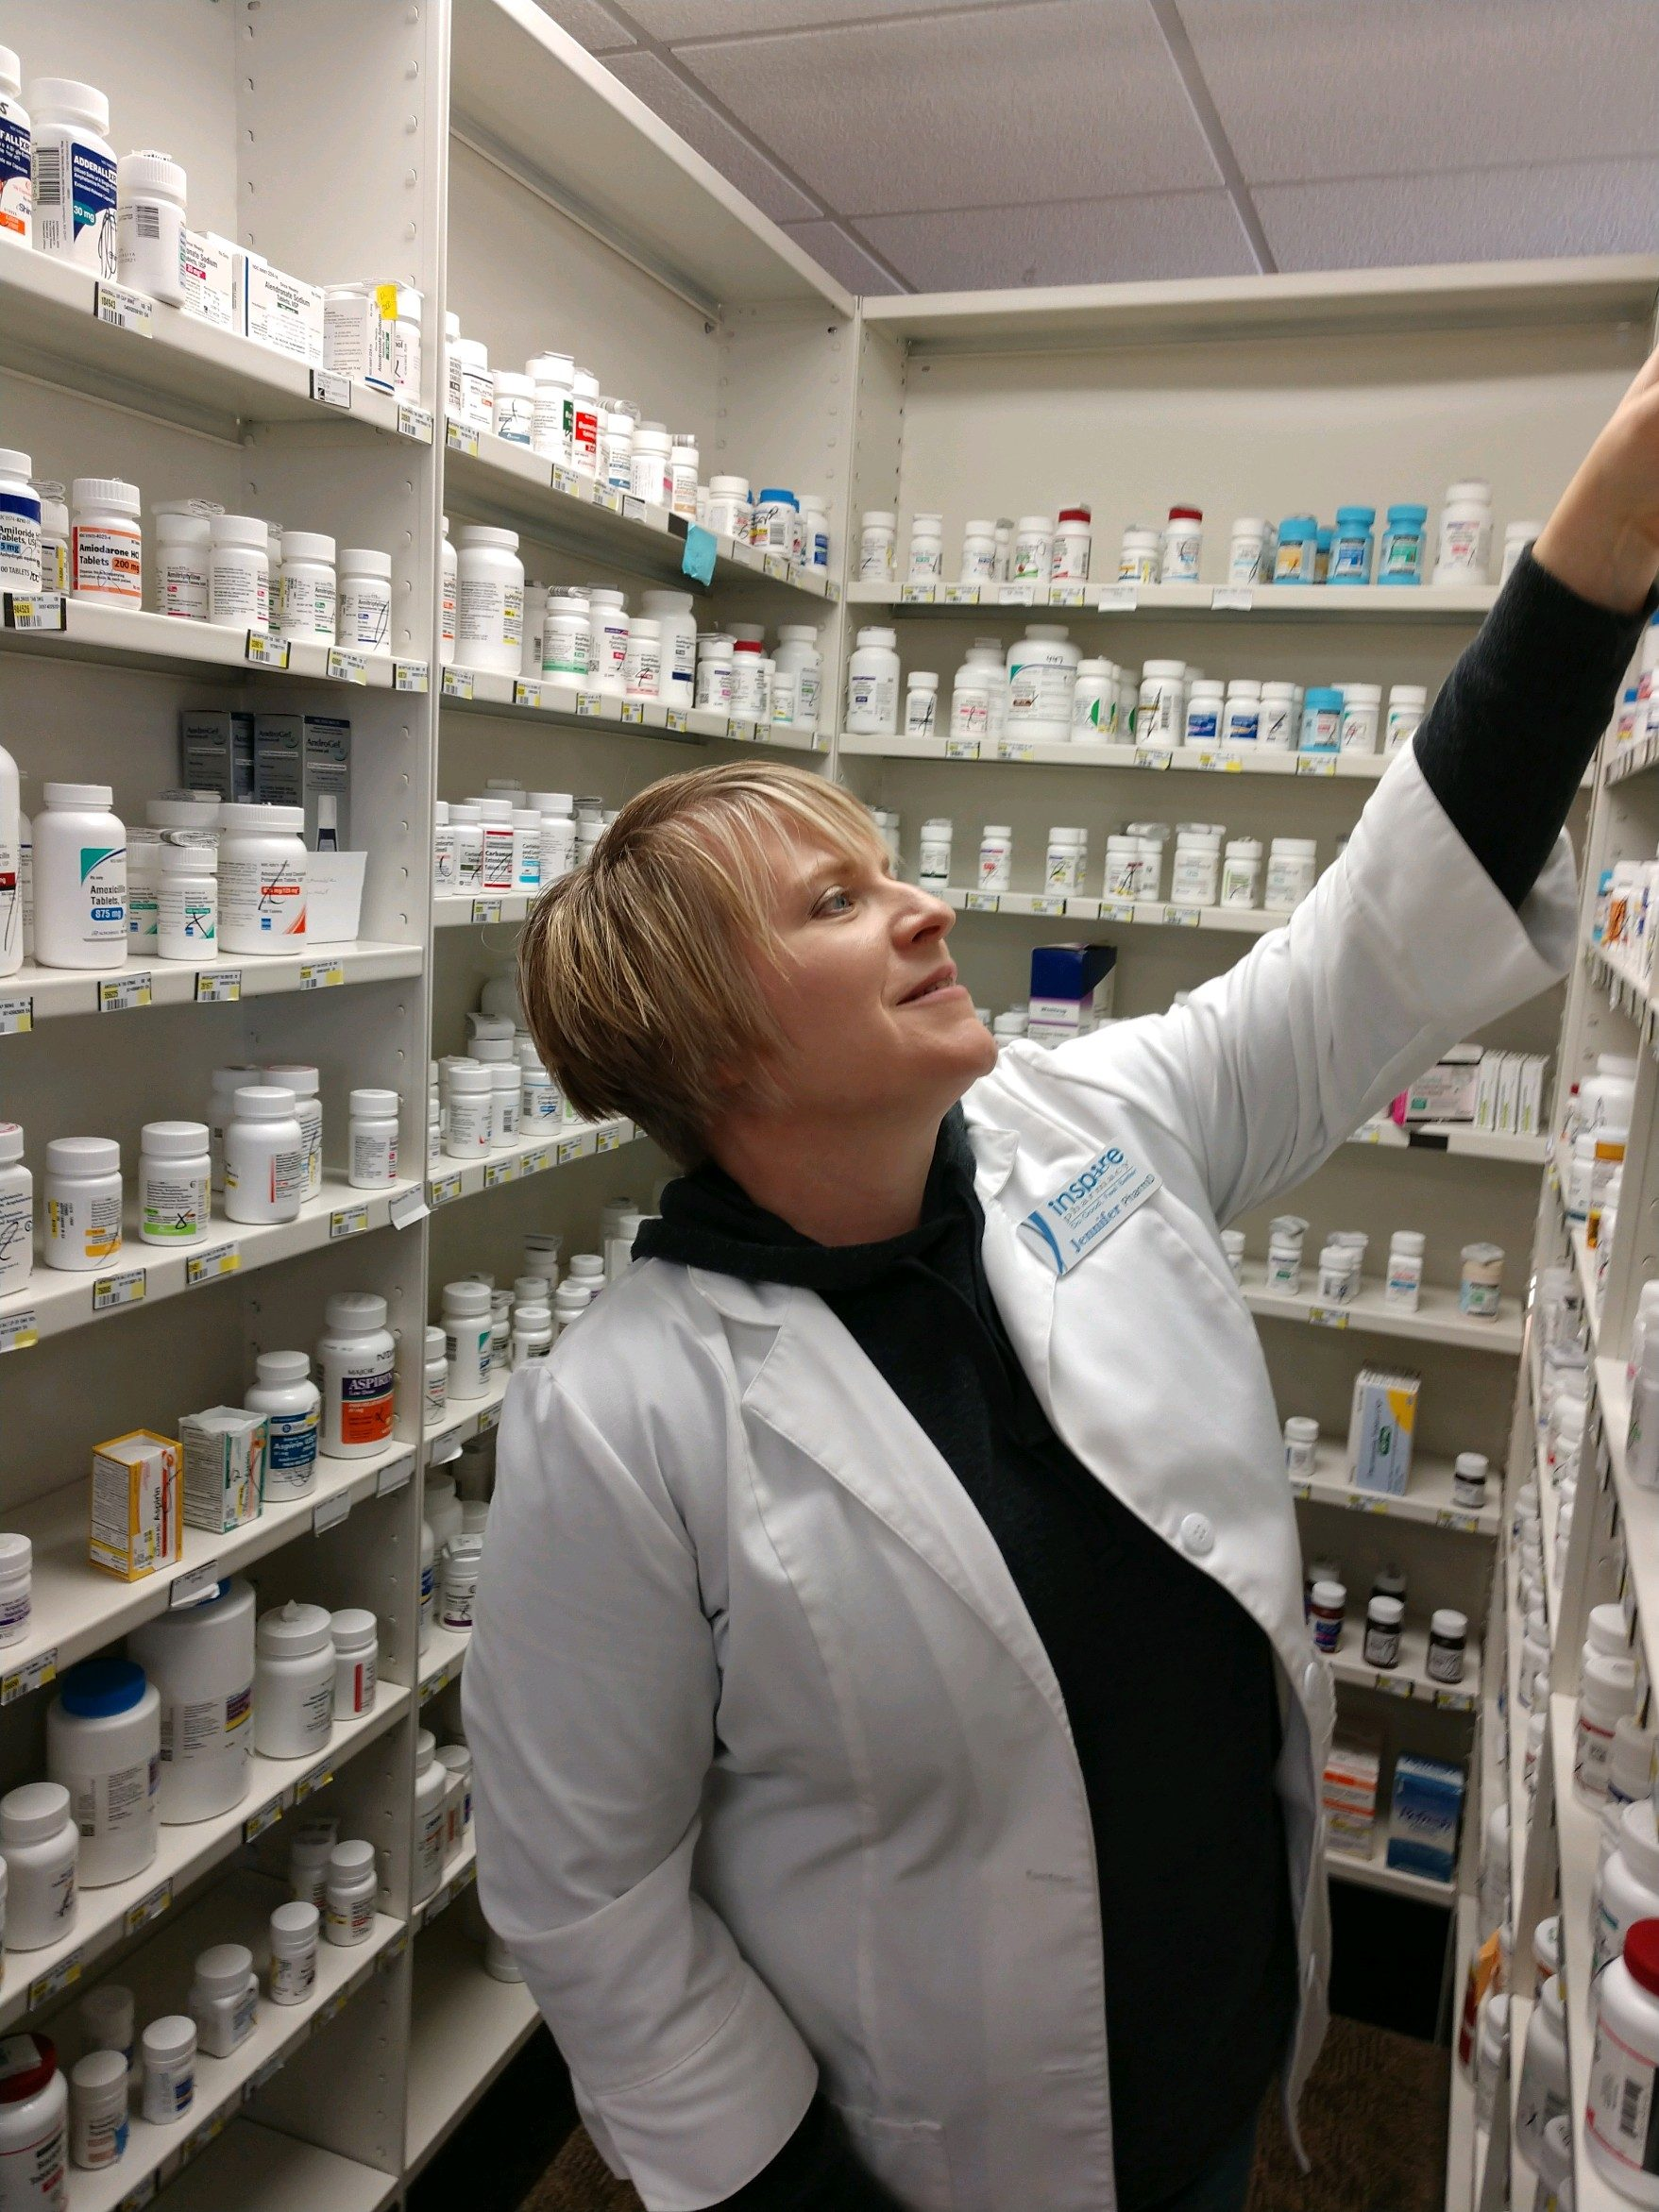 Woman reaching up to get medication bottle in a pharmacy